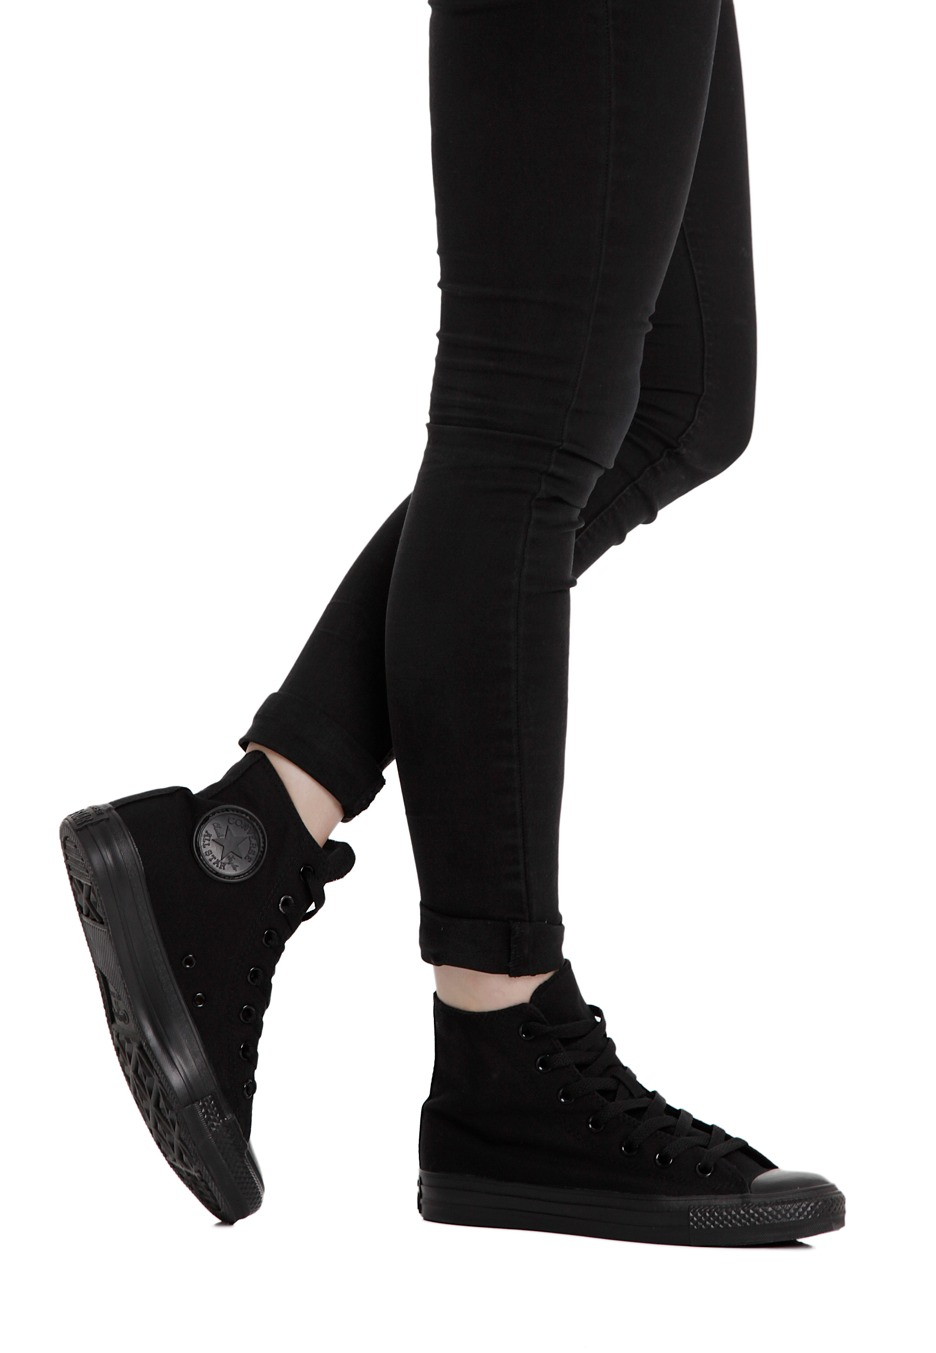 All Star Shoes For Girls Black